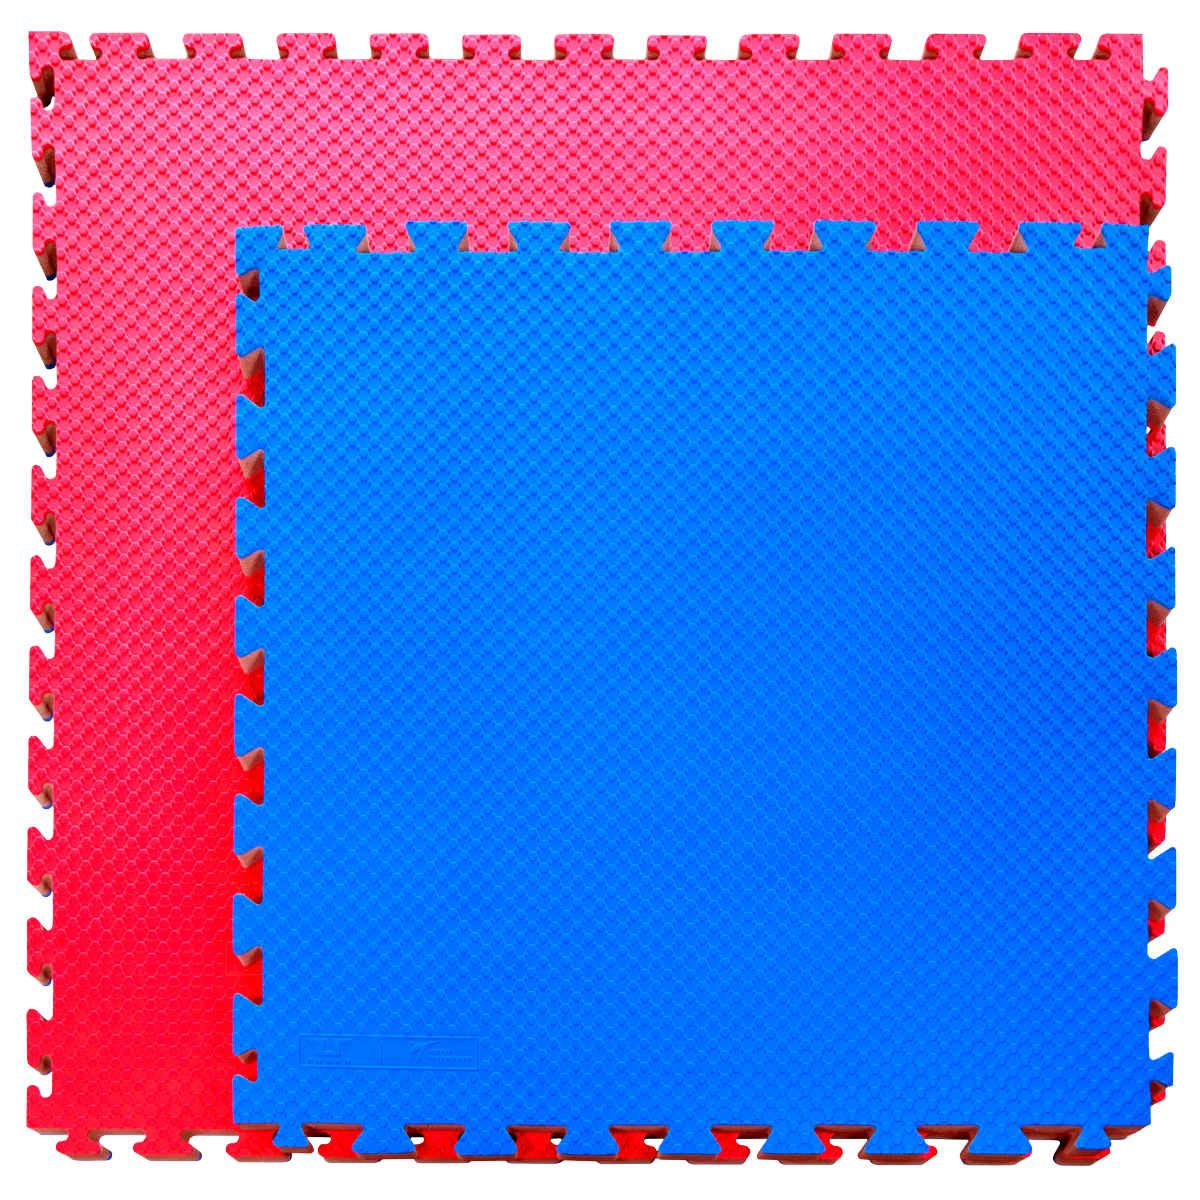 WT Approved Octagonal Mats